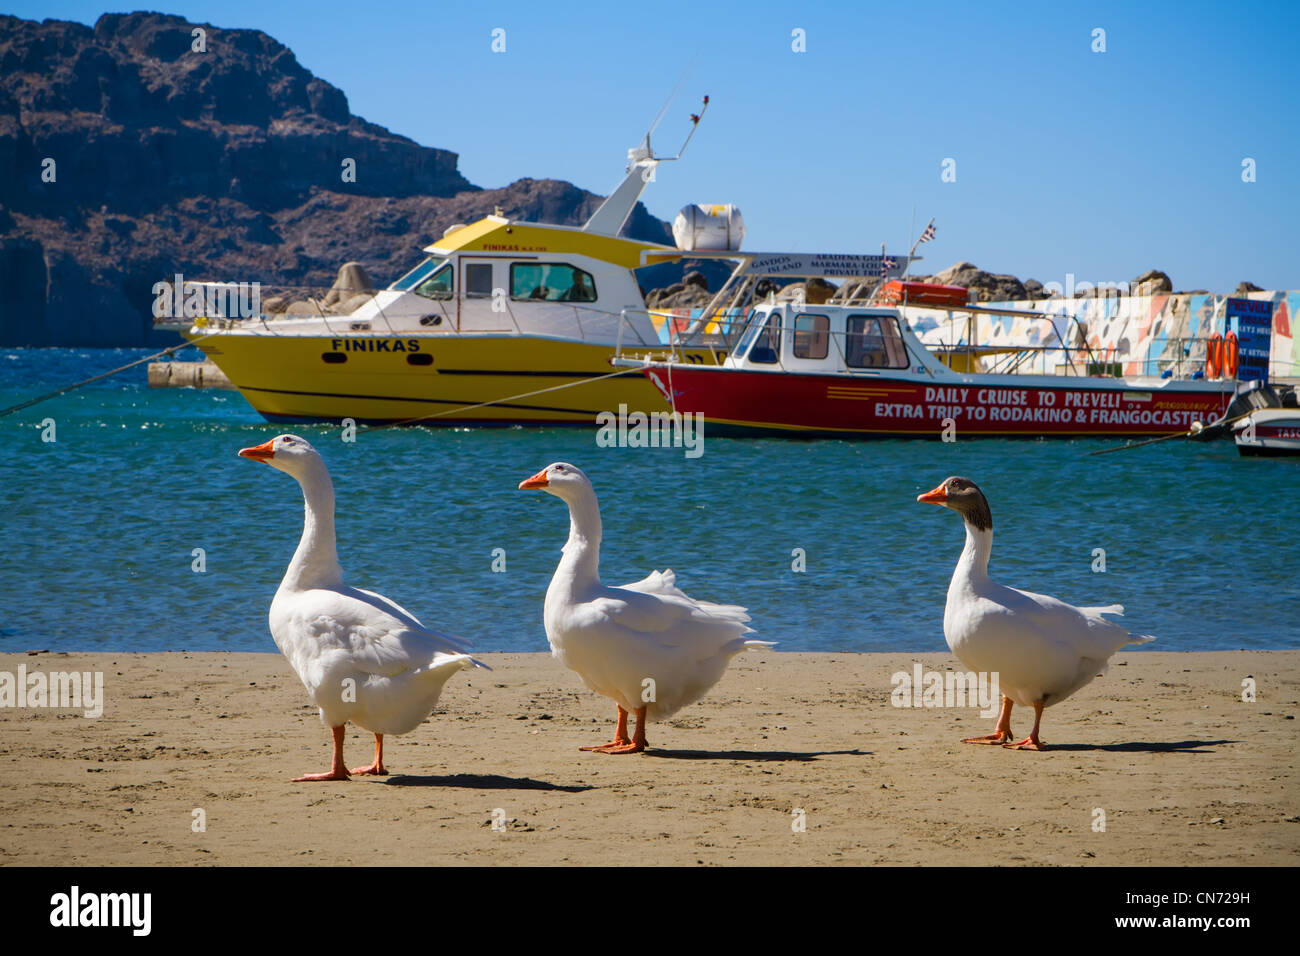 Three geese waiting for a daily cruise. Mediterranean, Plakias, Crete, Greece. Stock Photo